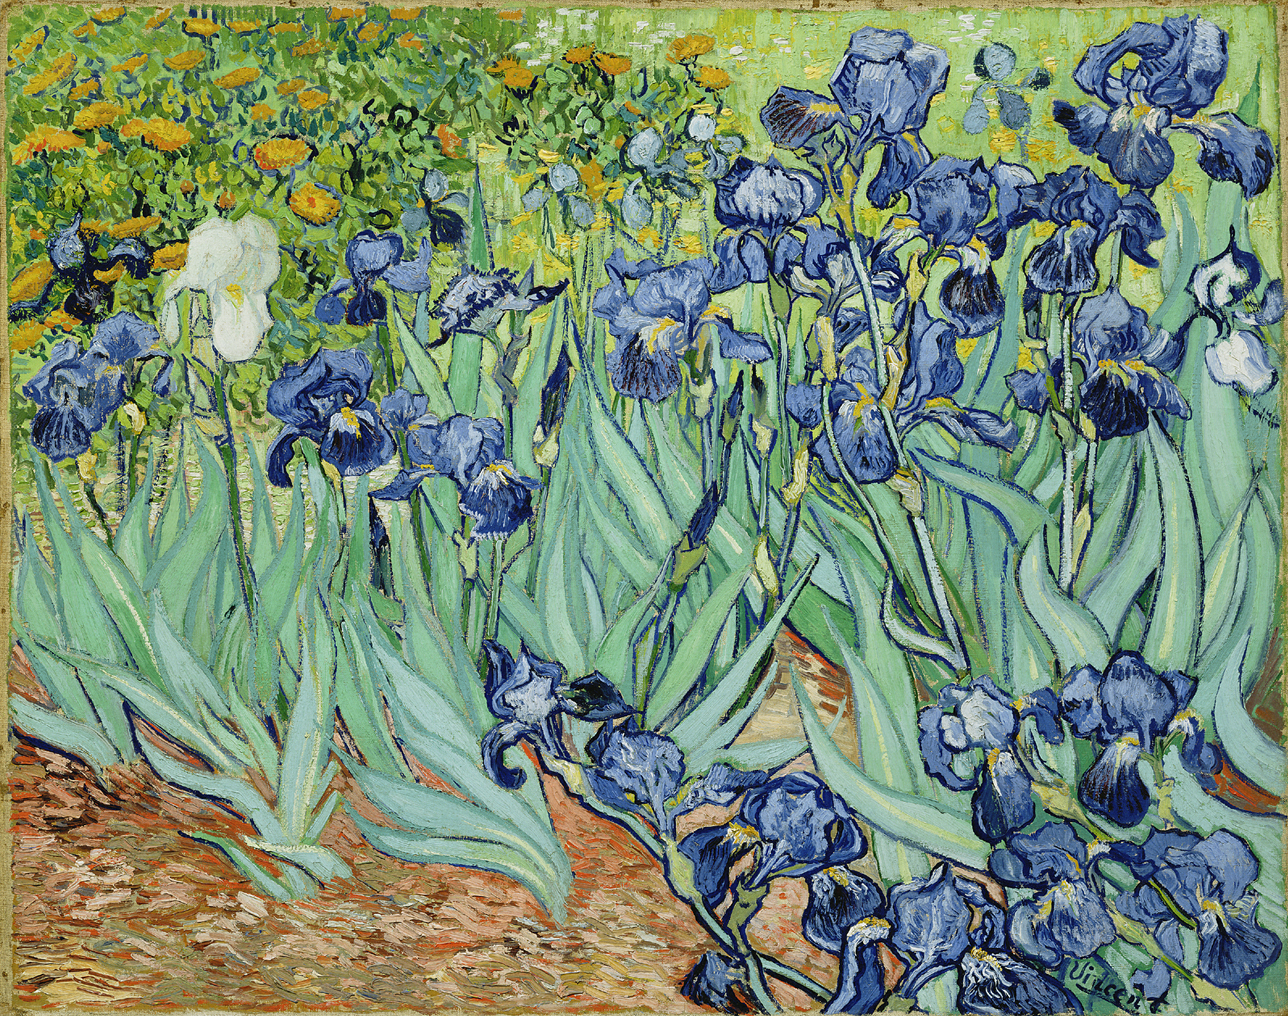 The fine art diner van gogh the spiritual struggle of irises notice how the irises seem to be blown over on the left side of the canvas it symbolizes the holy spirit breathing upon us and how it seems that when izmirmasajfo